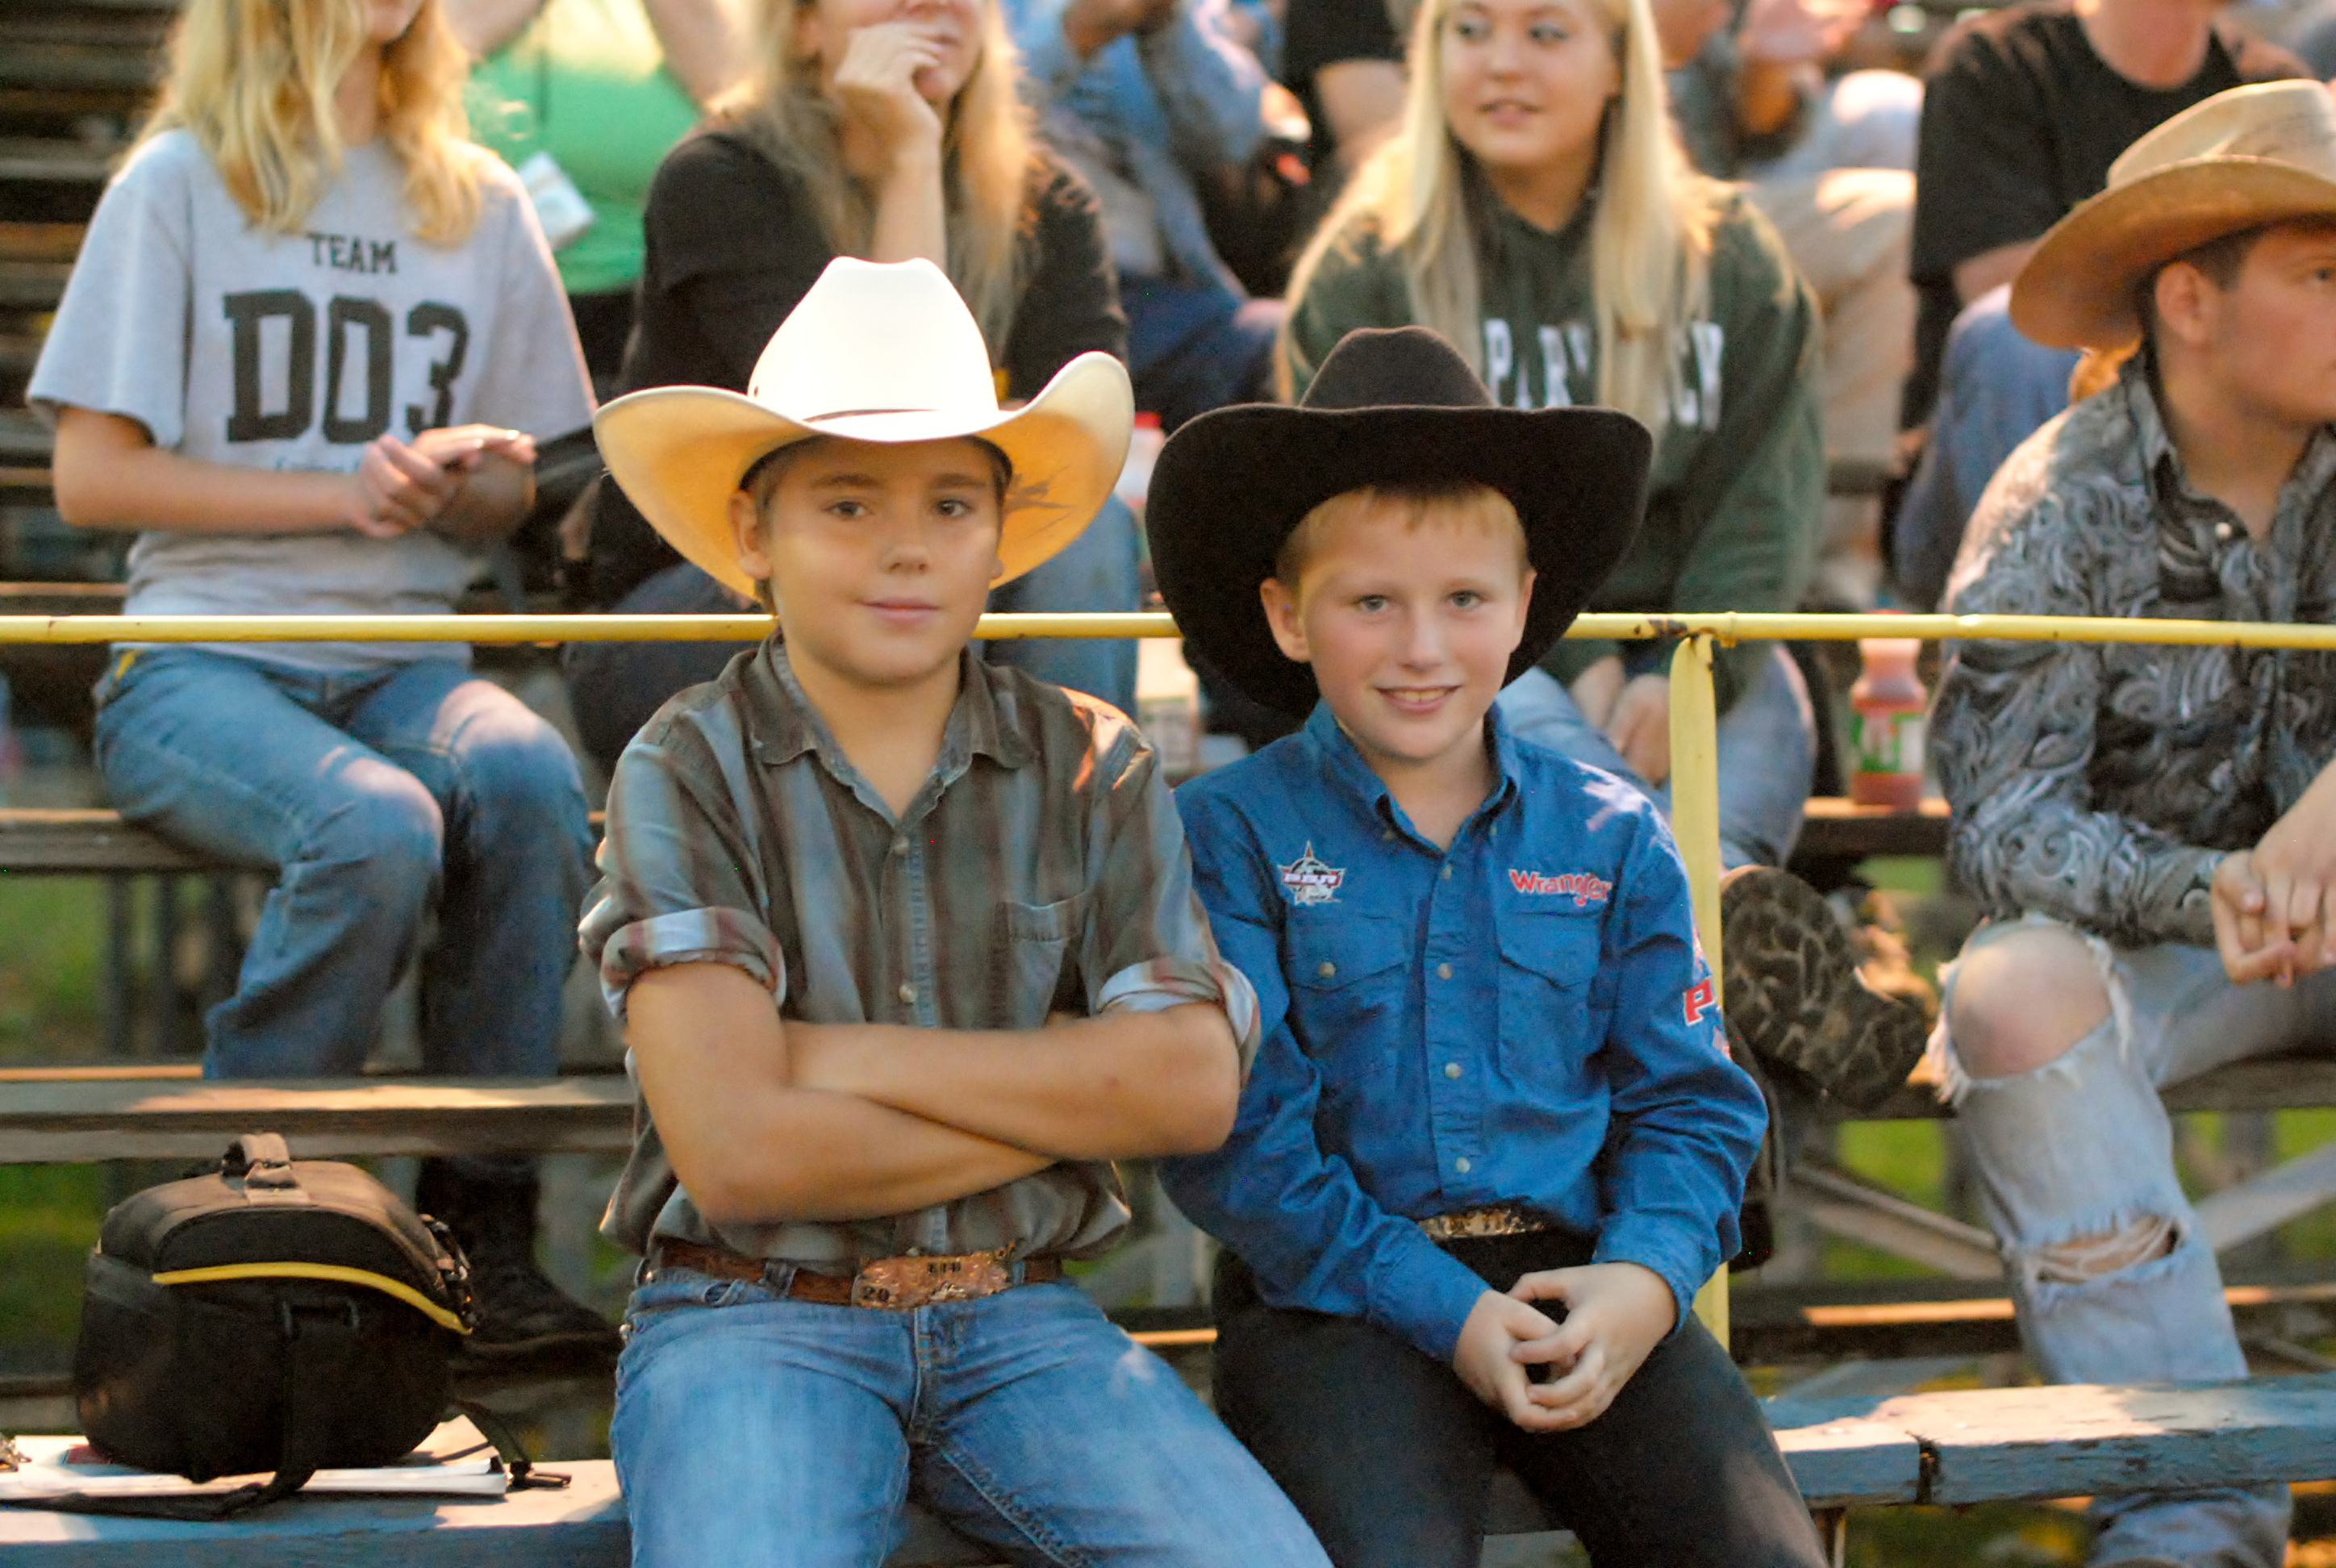 Aaron enjoying the Rodeo